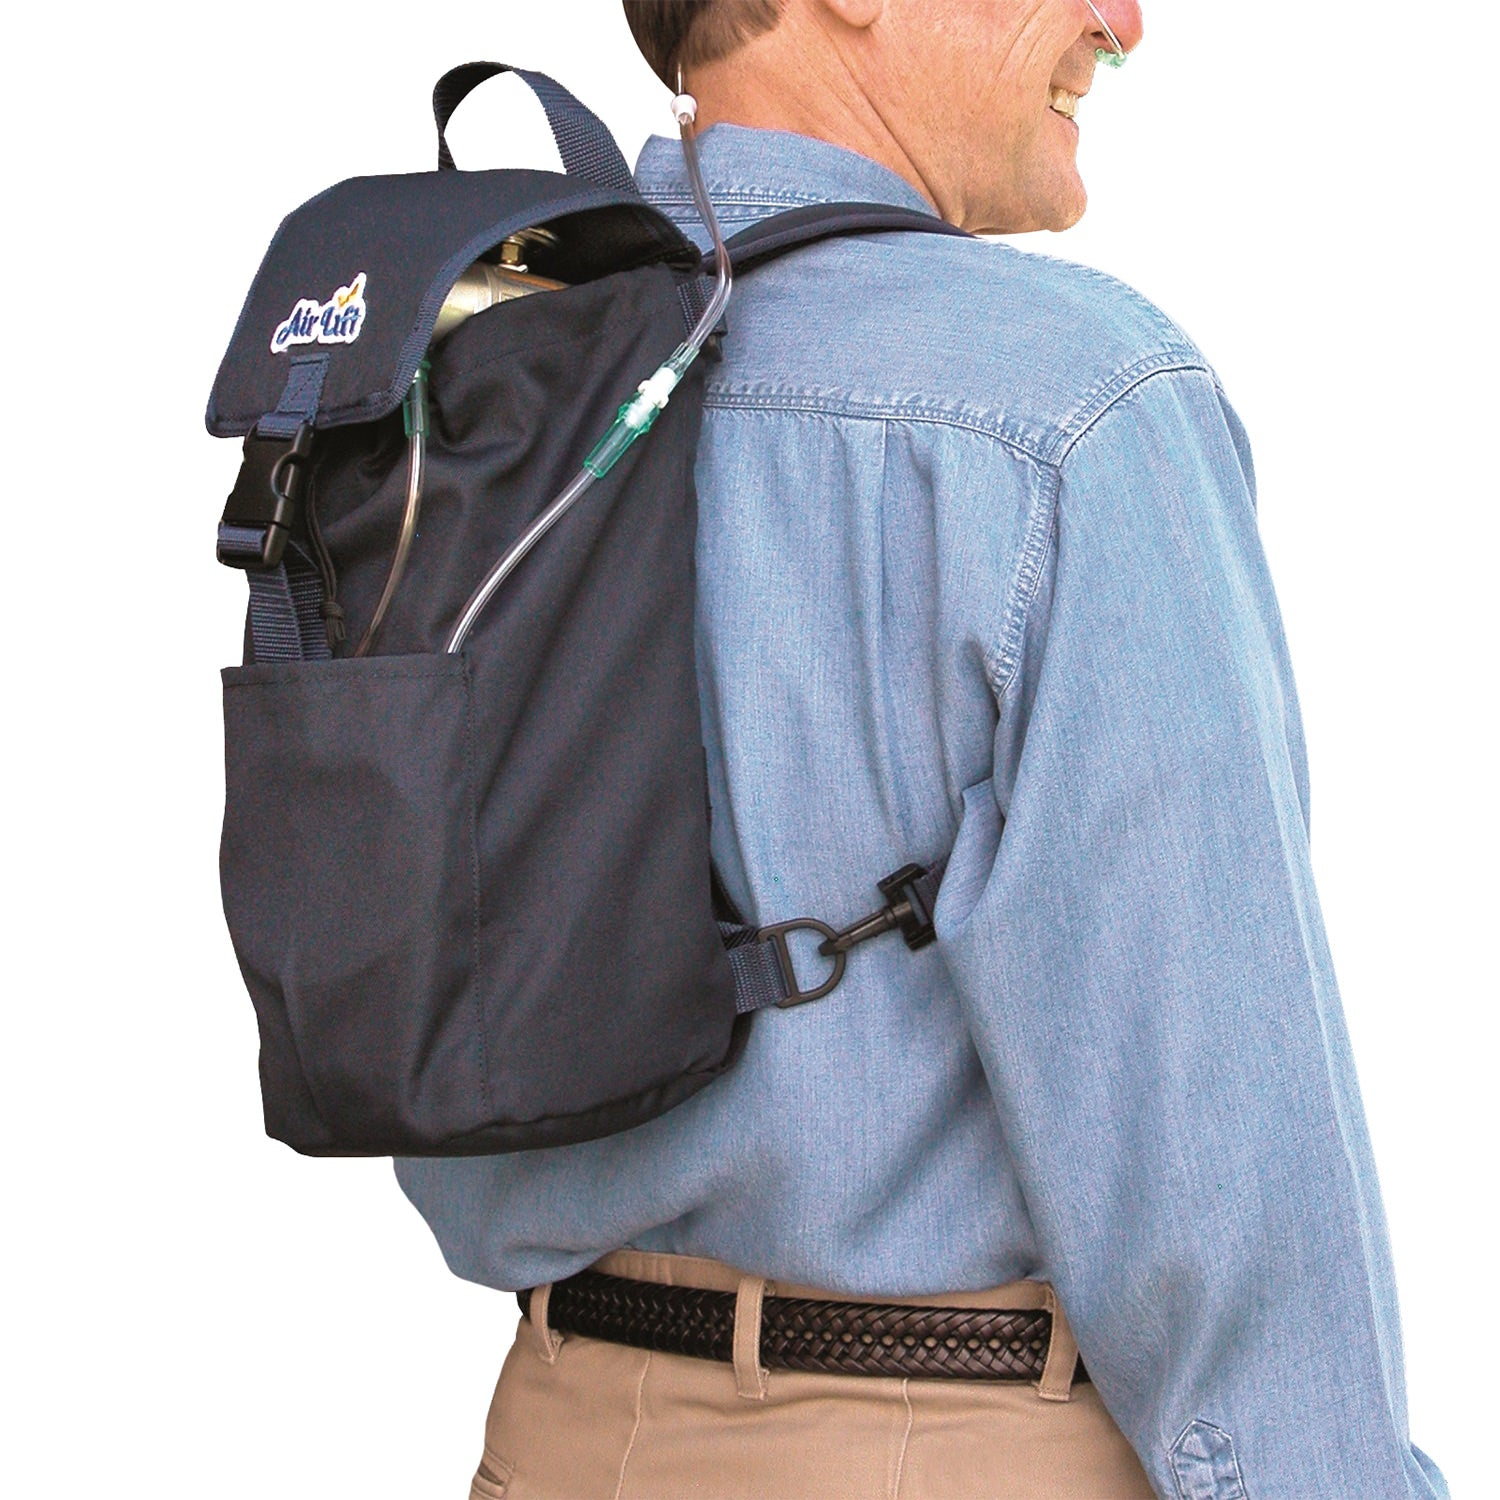 AirLift Backpack Oxygen Carrier-M6, C/M9 or Smaller Oxygen Cylinders